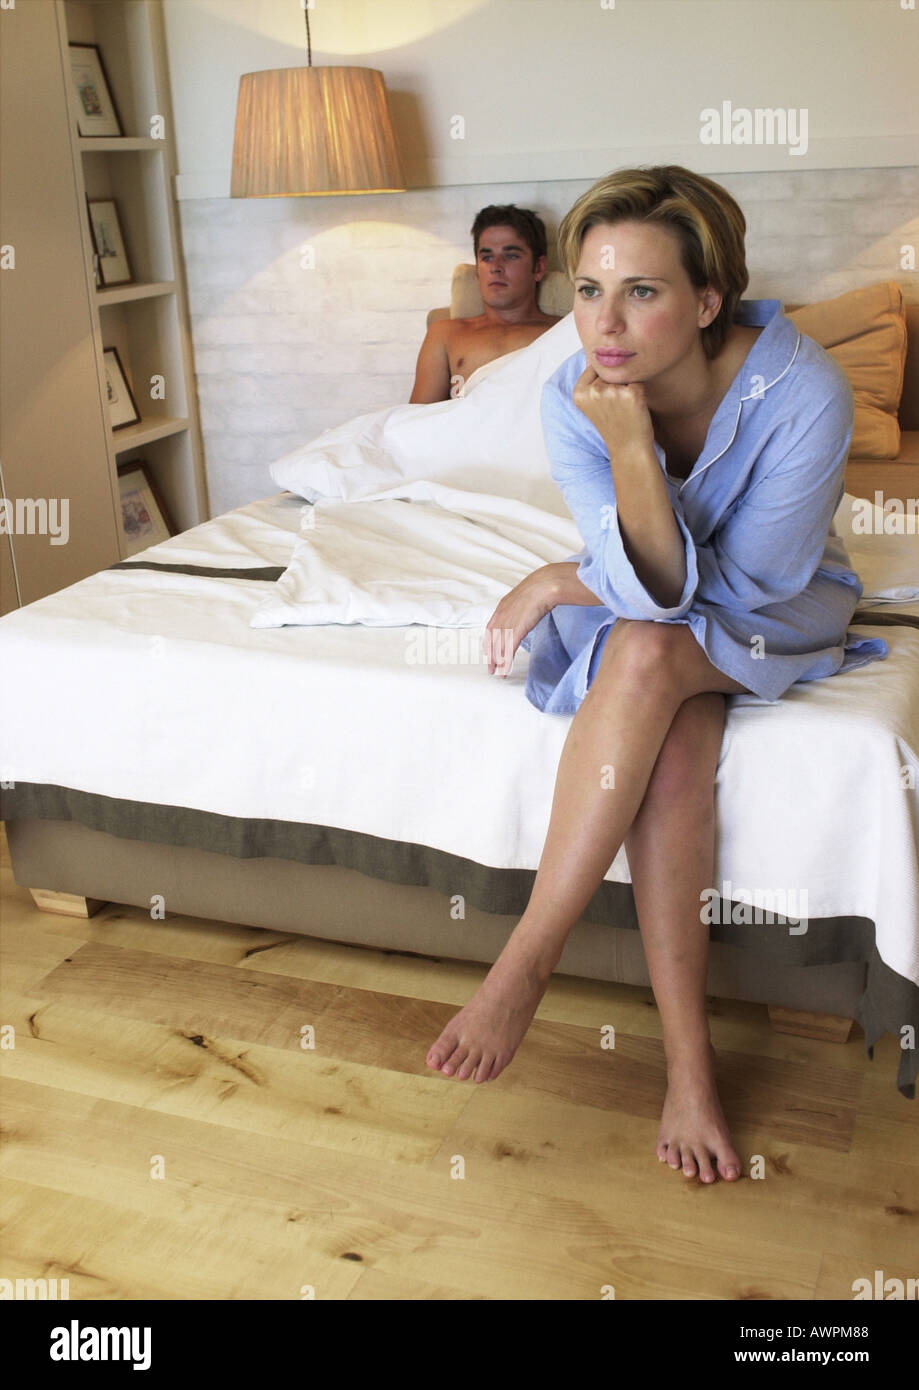 Man lying in bed, woman sitting at end of bed - Stock Image